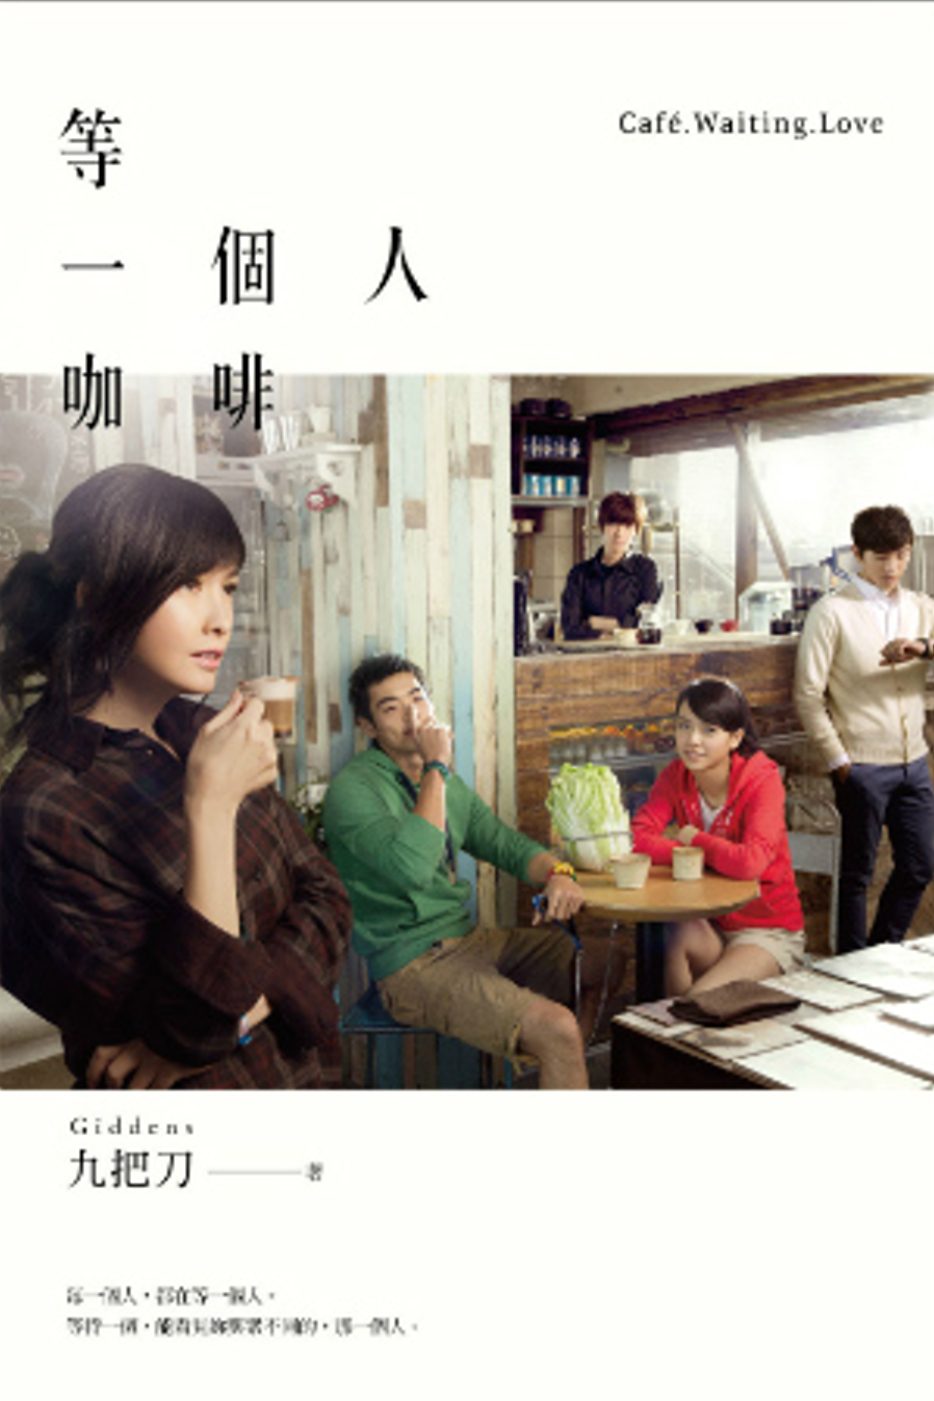 CAFE WAITING LOVE (2014)